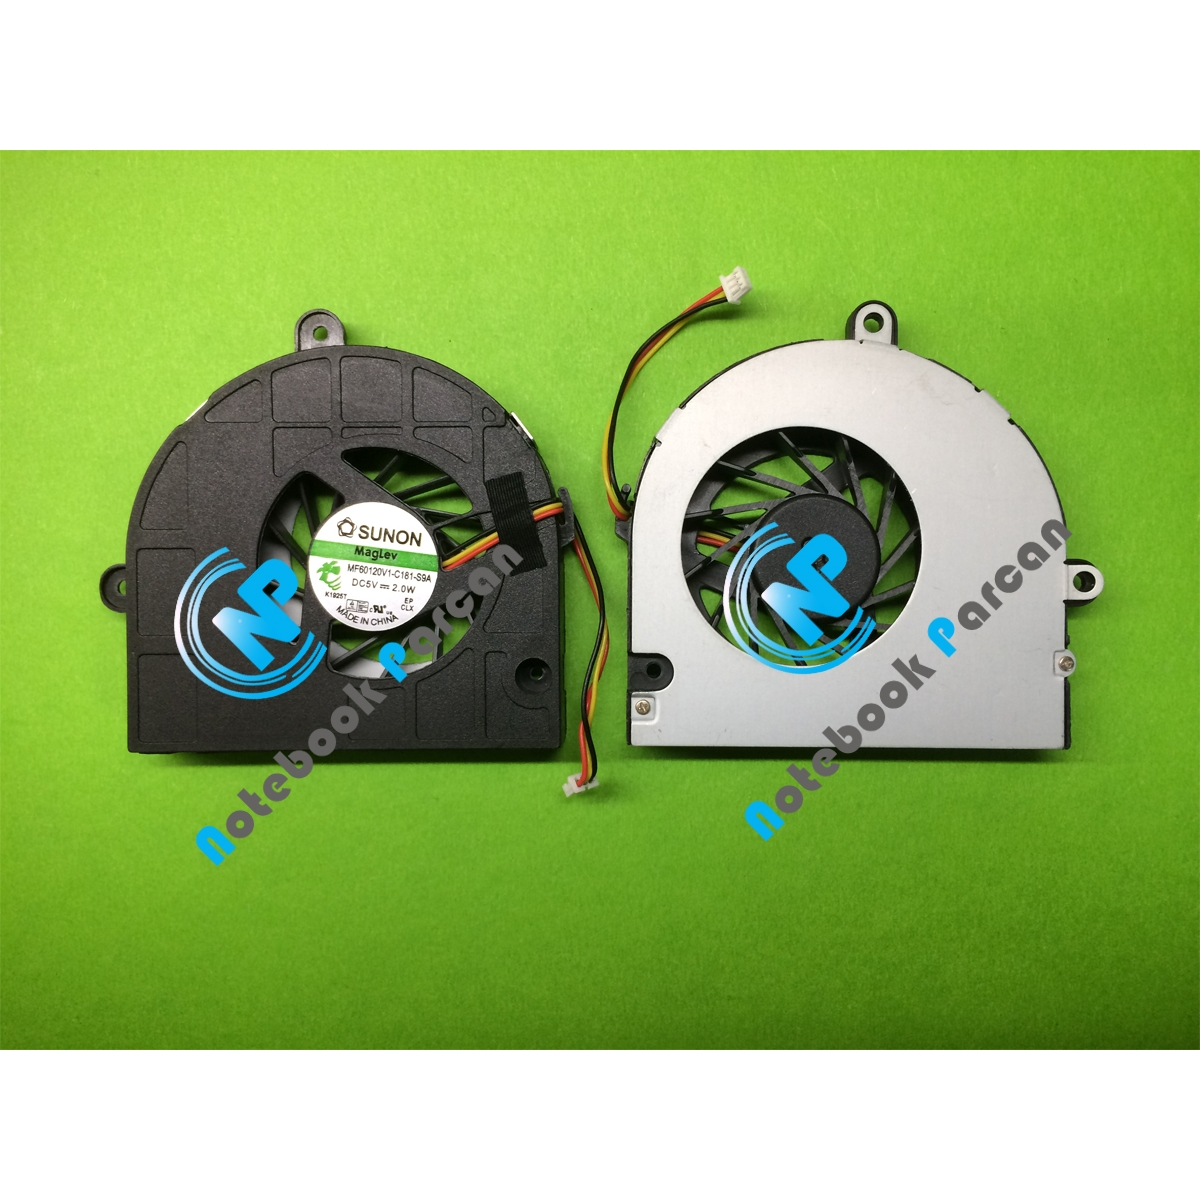 eMachines E529 Notebook Fan